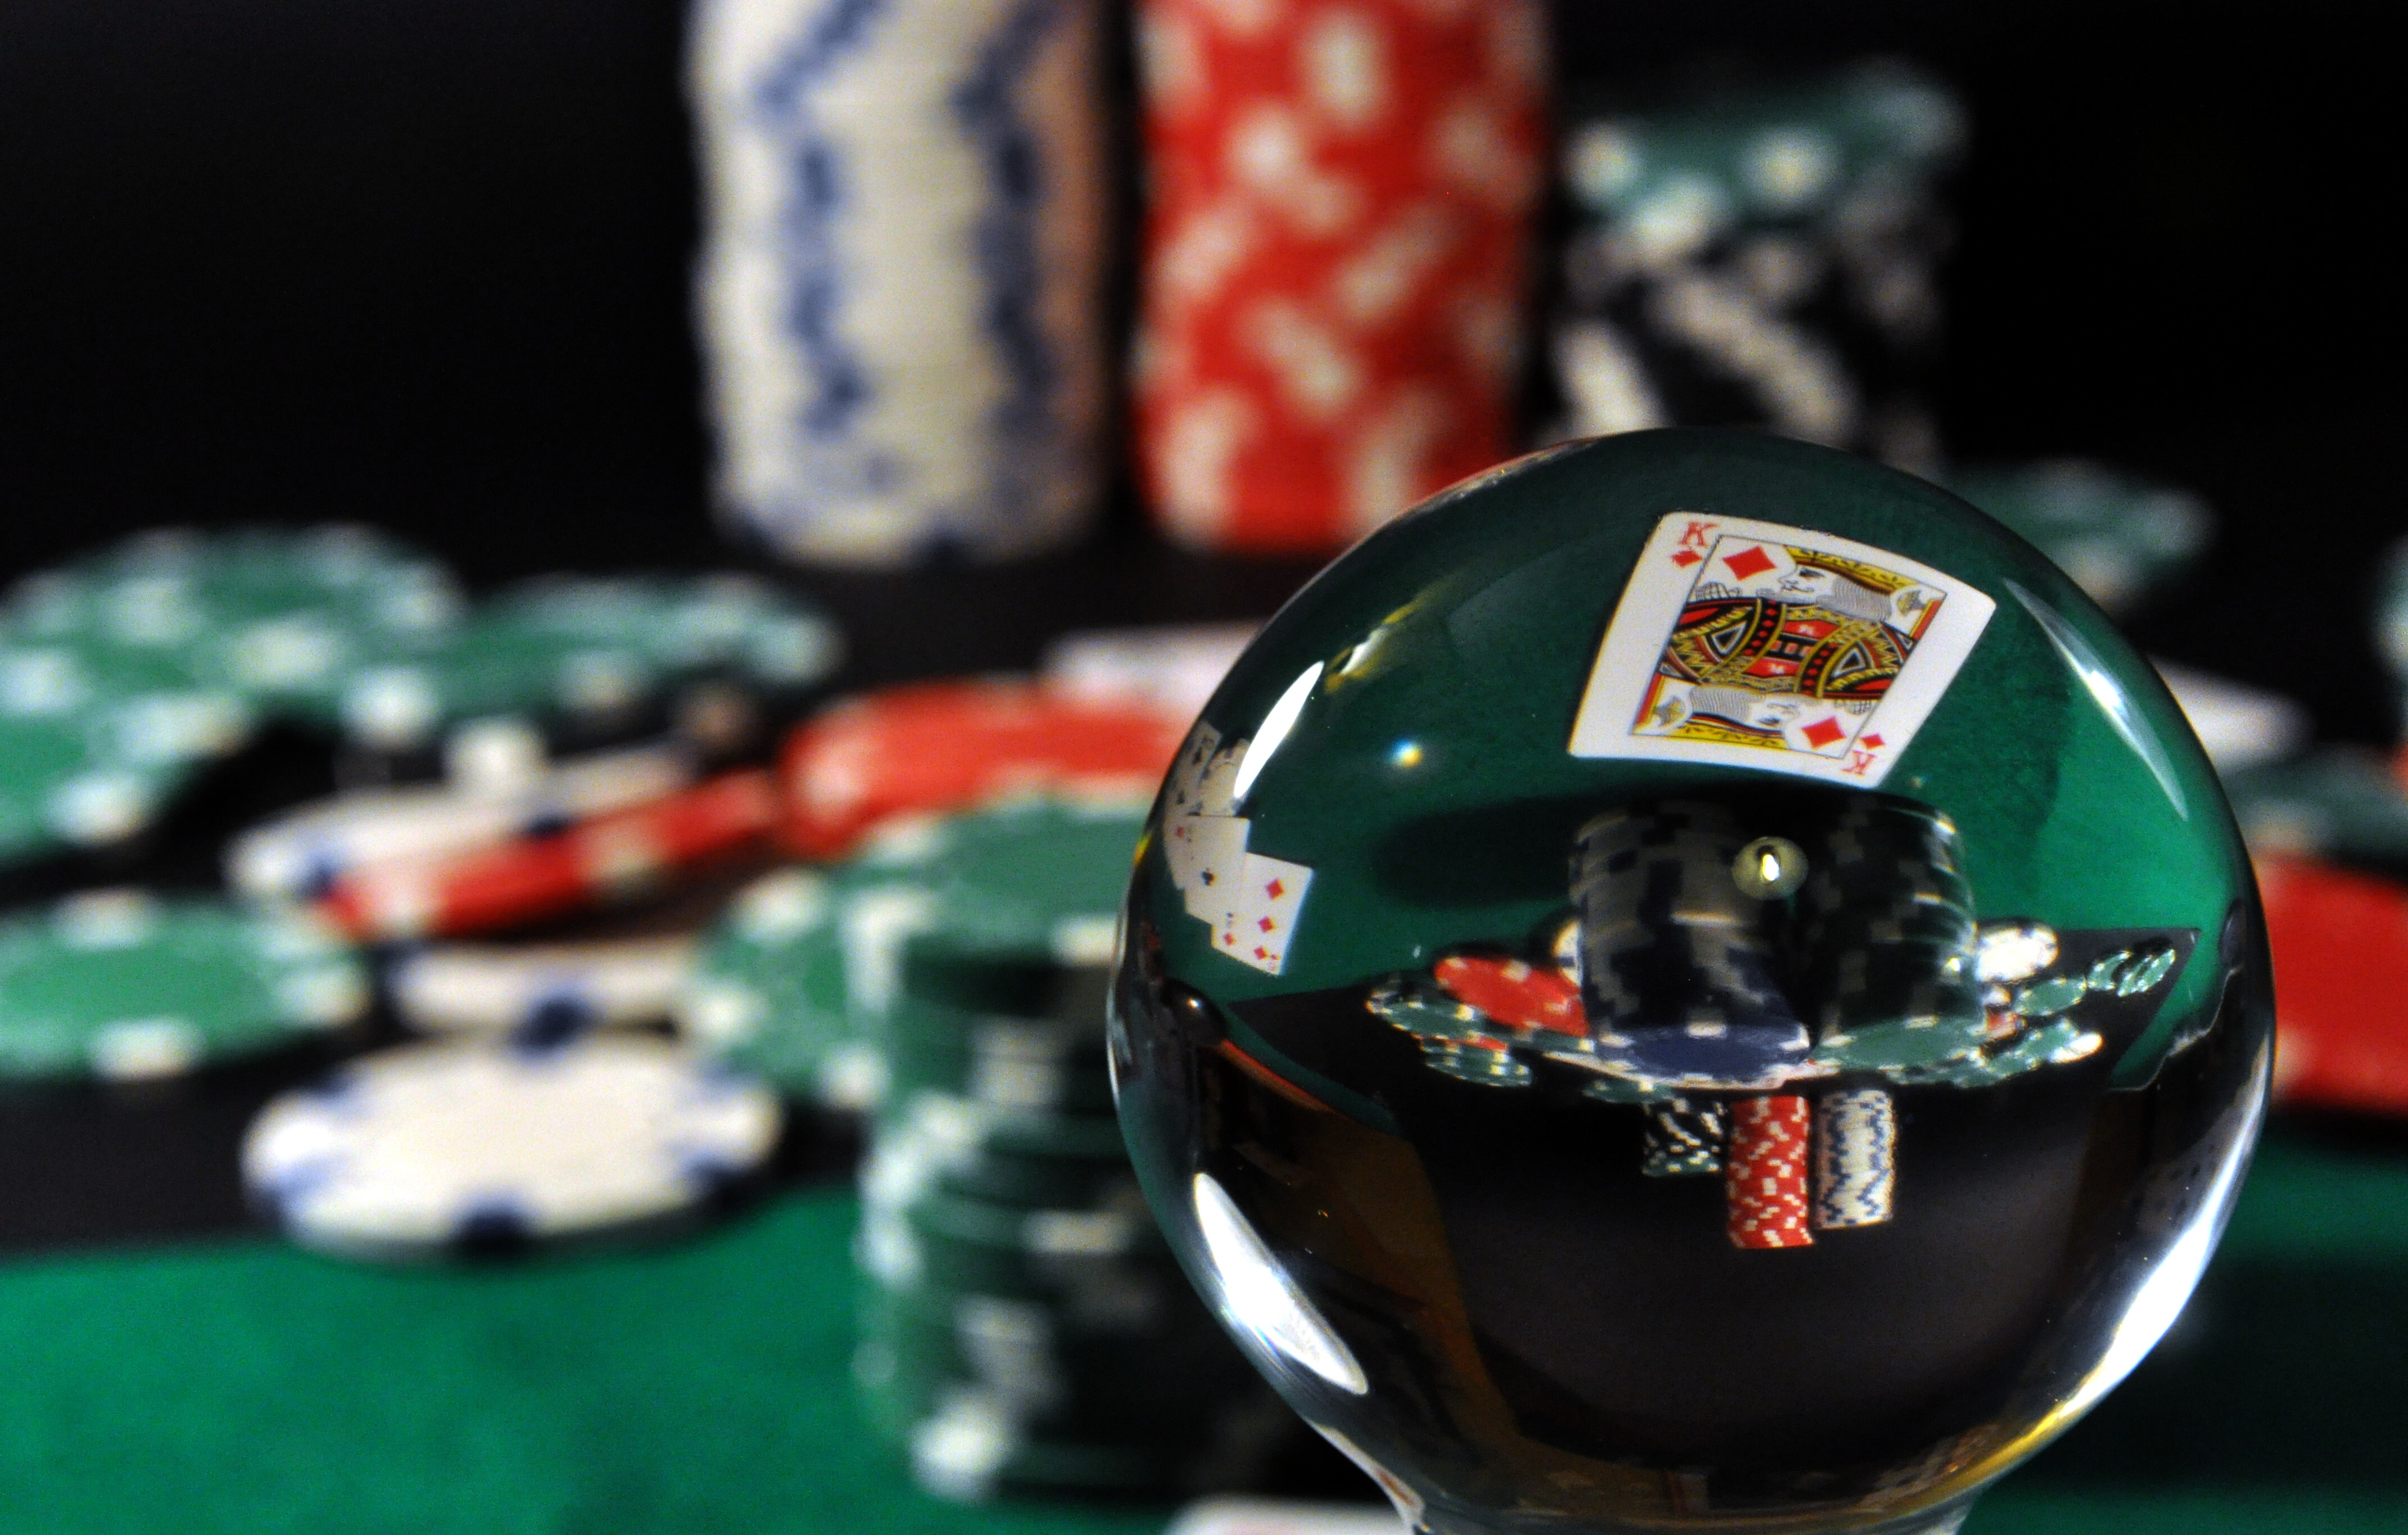 Can convicted felons gamble in oklahoma casinos bossier casino in louisiana